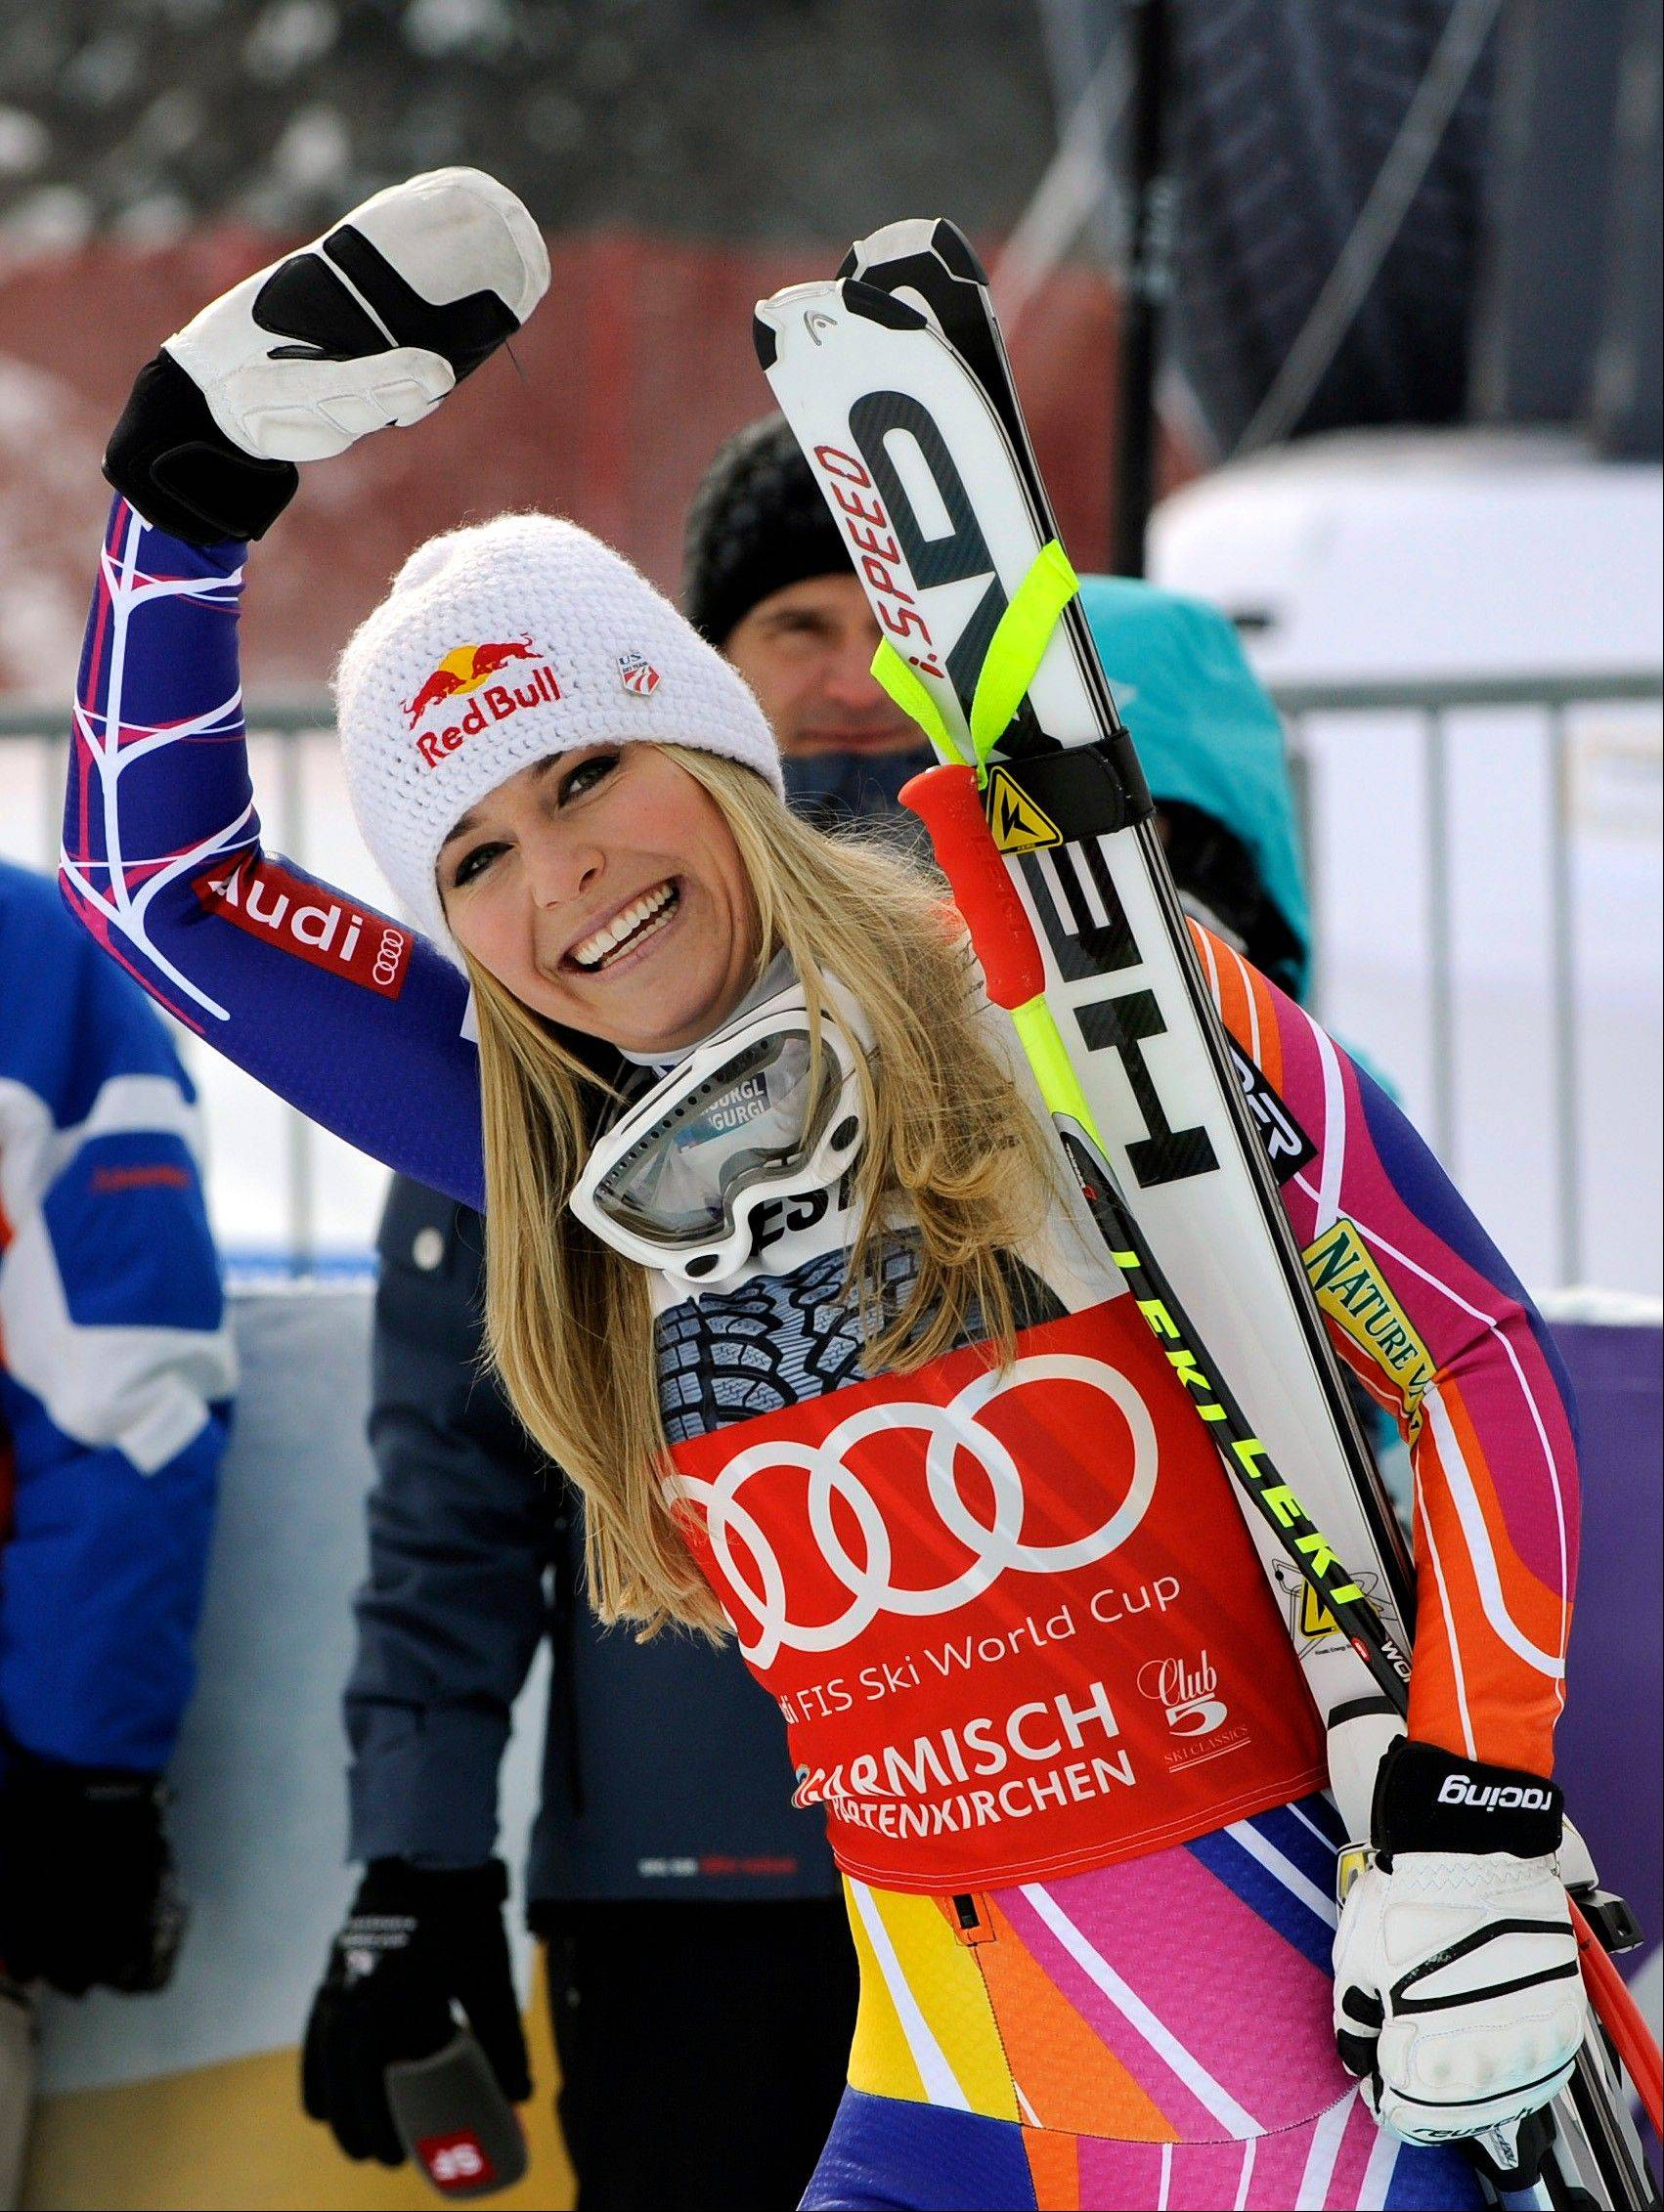 Lindsey Vonn waves as she celebrates Saturday after winning an alpine ski, women's World Cup downhill, in Garmisch-Partenkirchen, Germany. Vonn captured her 50th World Cup career victory by winning the downhill on the demanding Kandahar course on Saturday. The American is third on the all-time list, behind Annemarie Moser-Proell of Austria with 62 victories and Vreni Schneider of Switzerland with 55. Vonn now has 25 downhill wins, second behind Moser-Proell's 36.